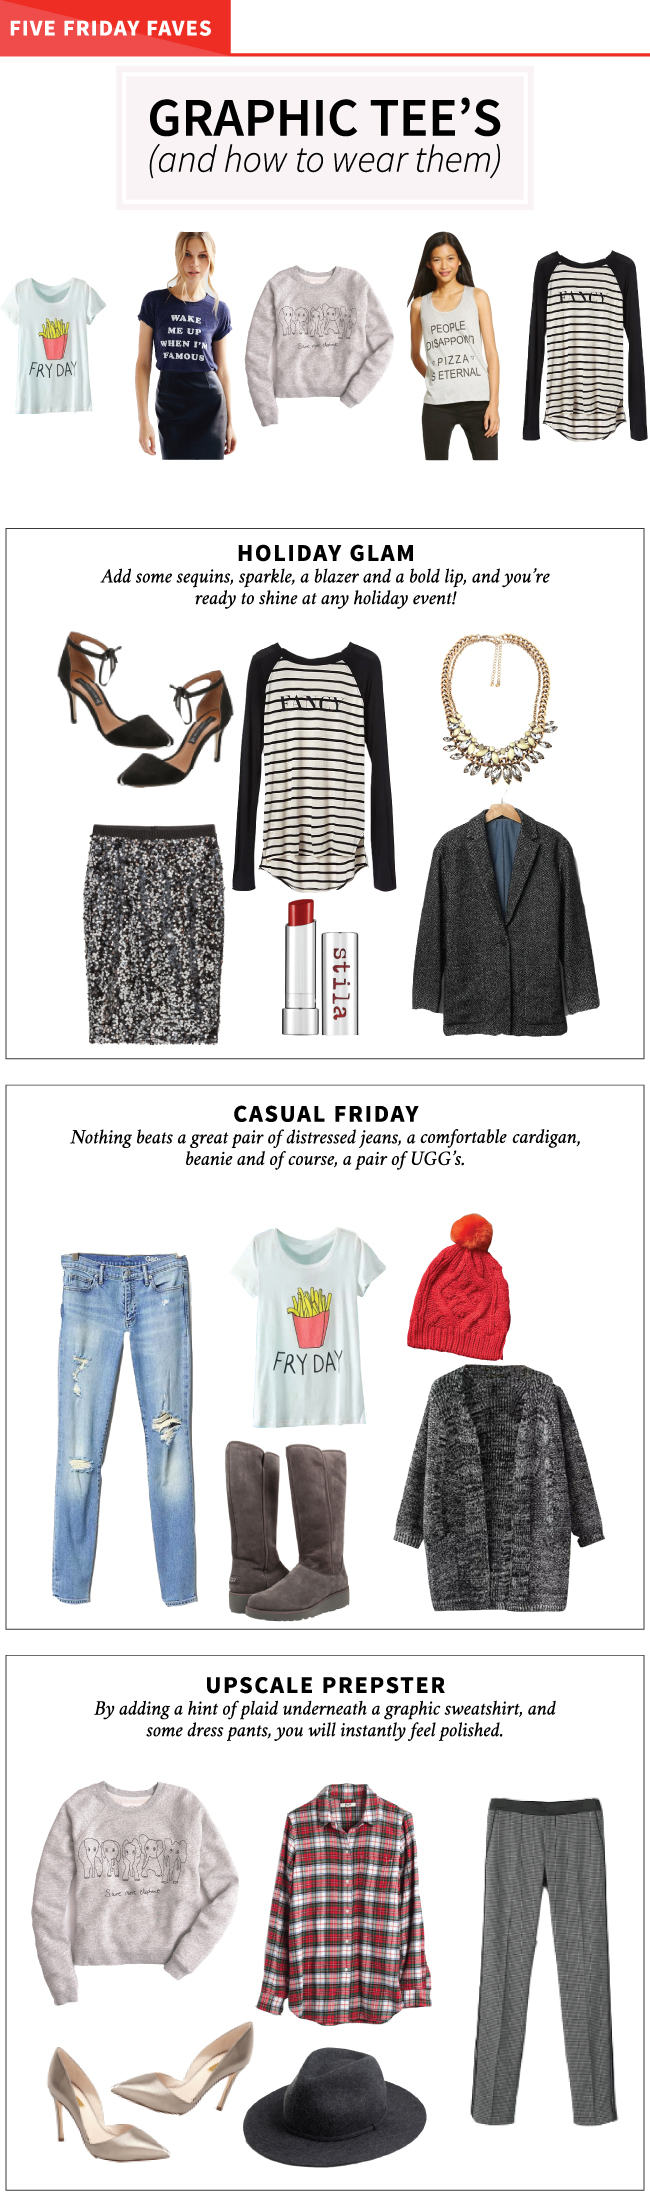 Five Friday Faves - Graphic Tee's (and how to style them)